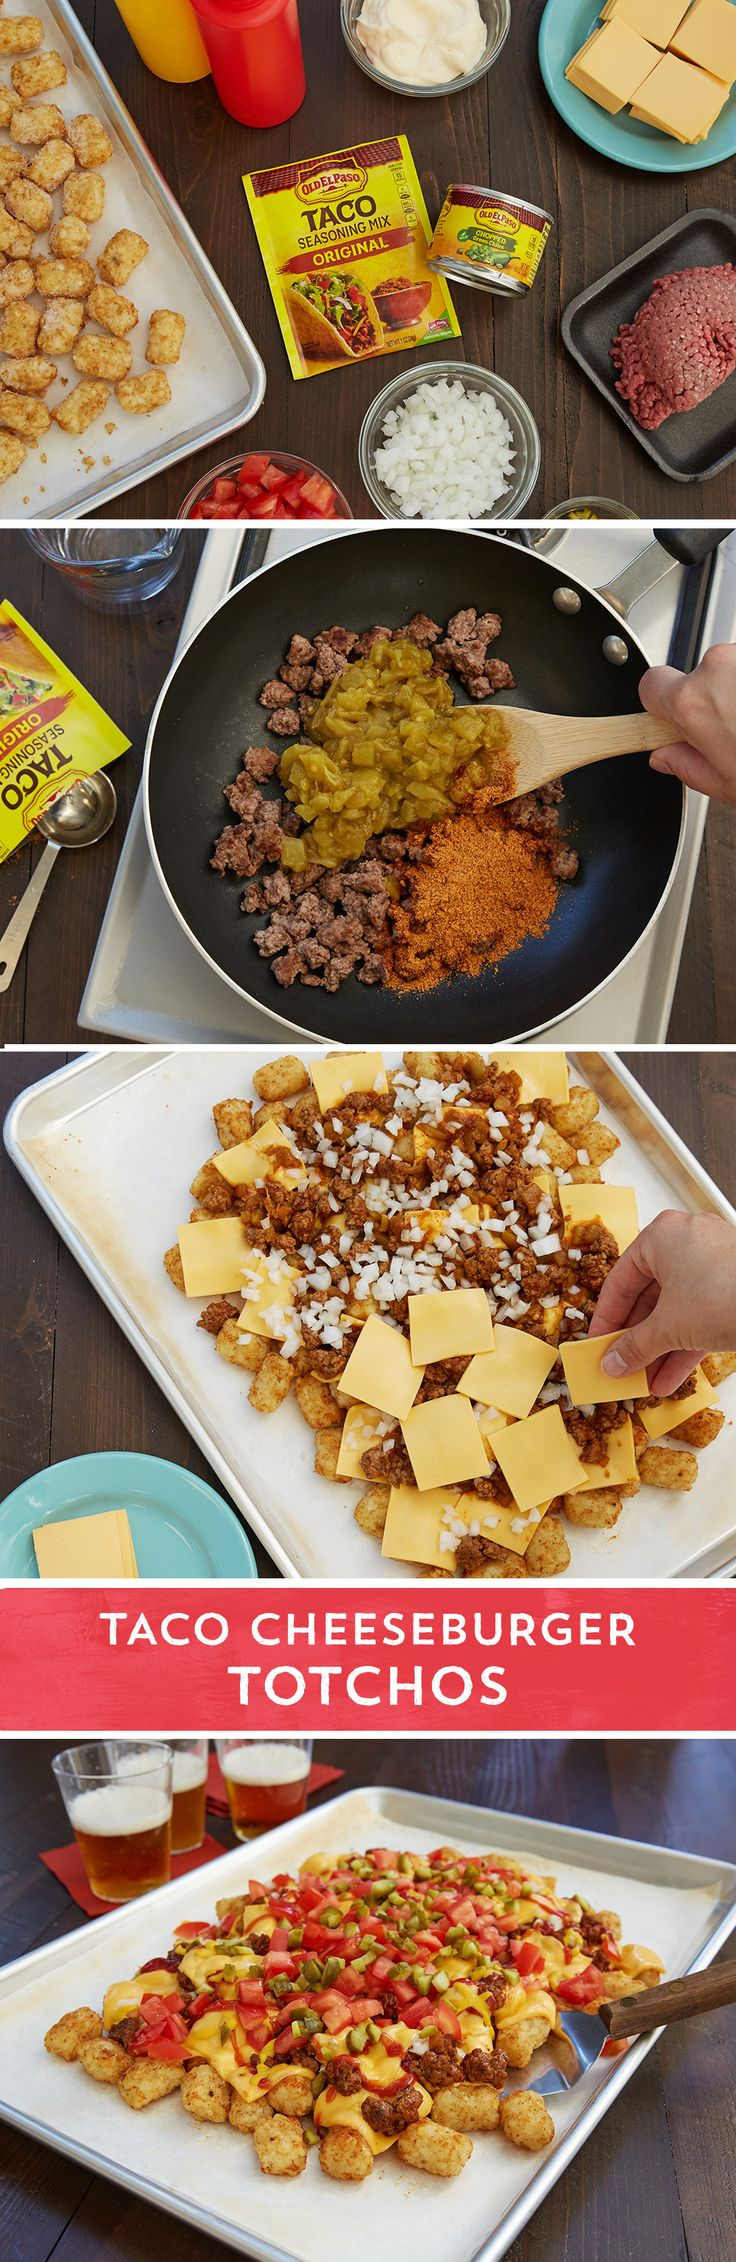 This mashup of cheeseburgers and nachos is an over-the-top, deliciously easy crowd-pleaser you'll make again and again. Bake the tots like always, but take it up a notch when you top them with ground beef cooked with Old El Paso™ taco seasoning and Old El Paso™ chopped green chiles. American cheese melted on top and sprinkled with traditional hamburger toppings like tomato, onion, pickles, ketchup, and mustard will have you thinking of your favorite childhood kid's meal. Taco Cheeseburger…